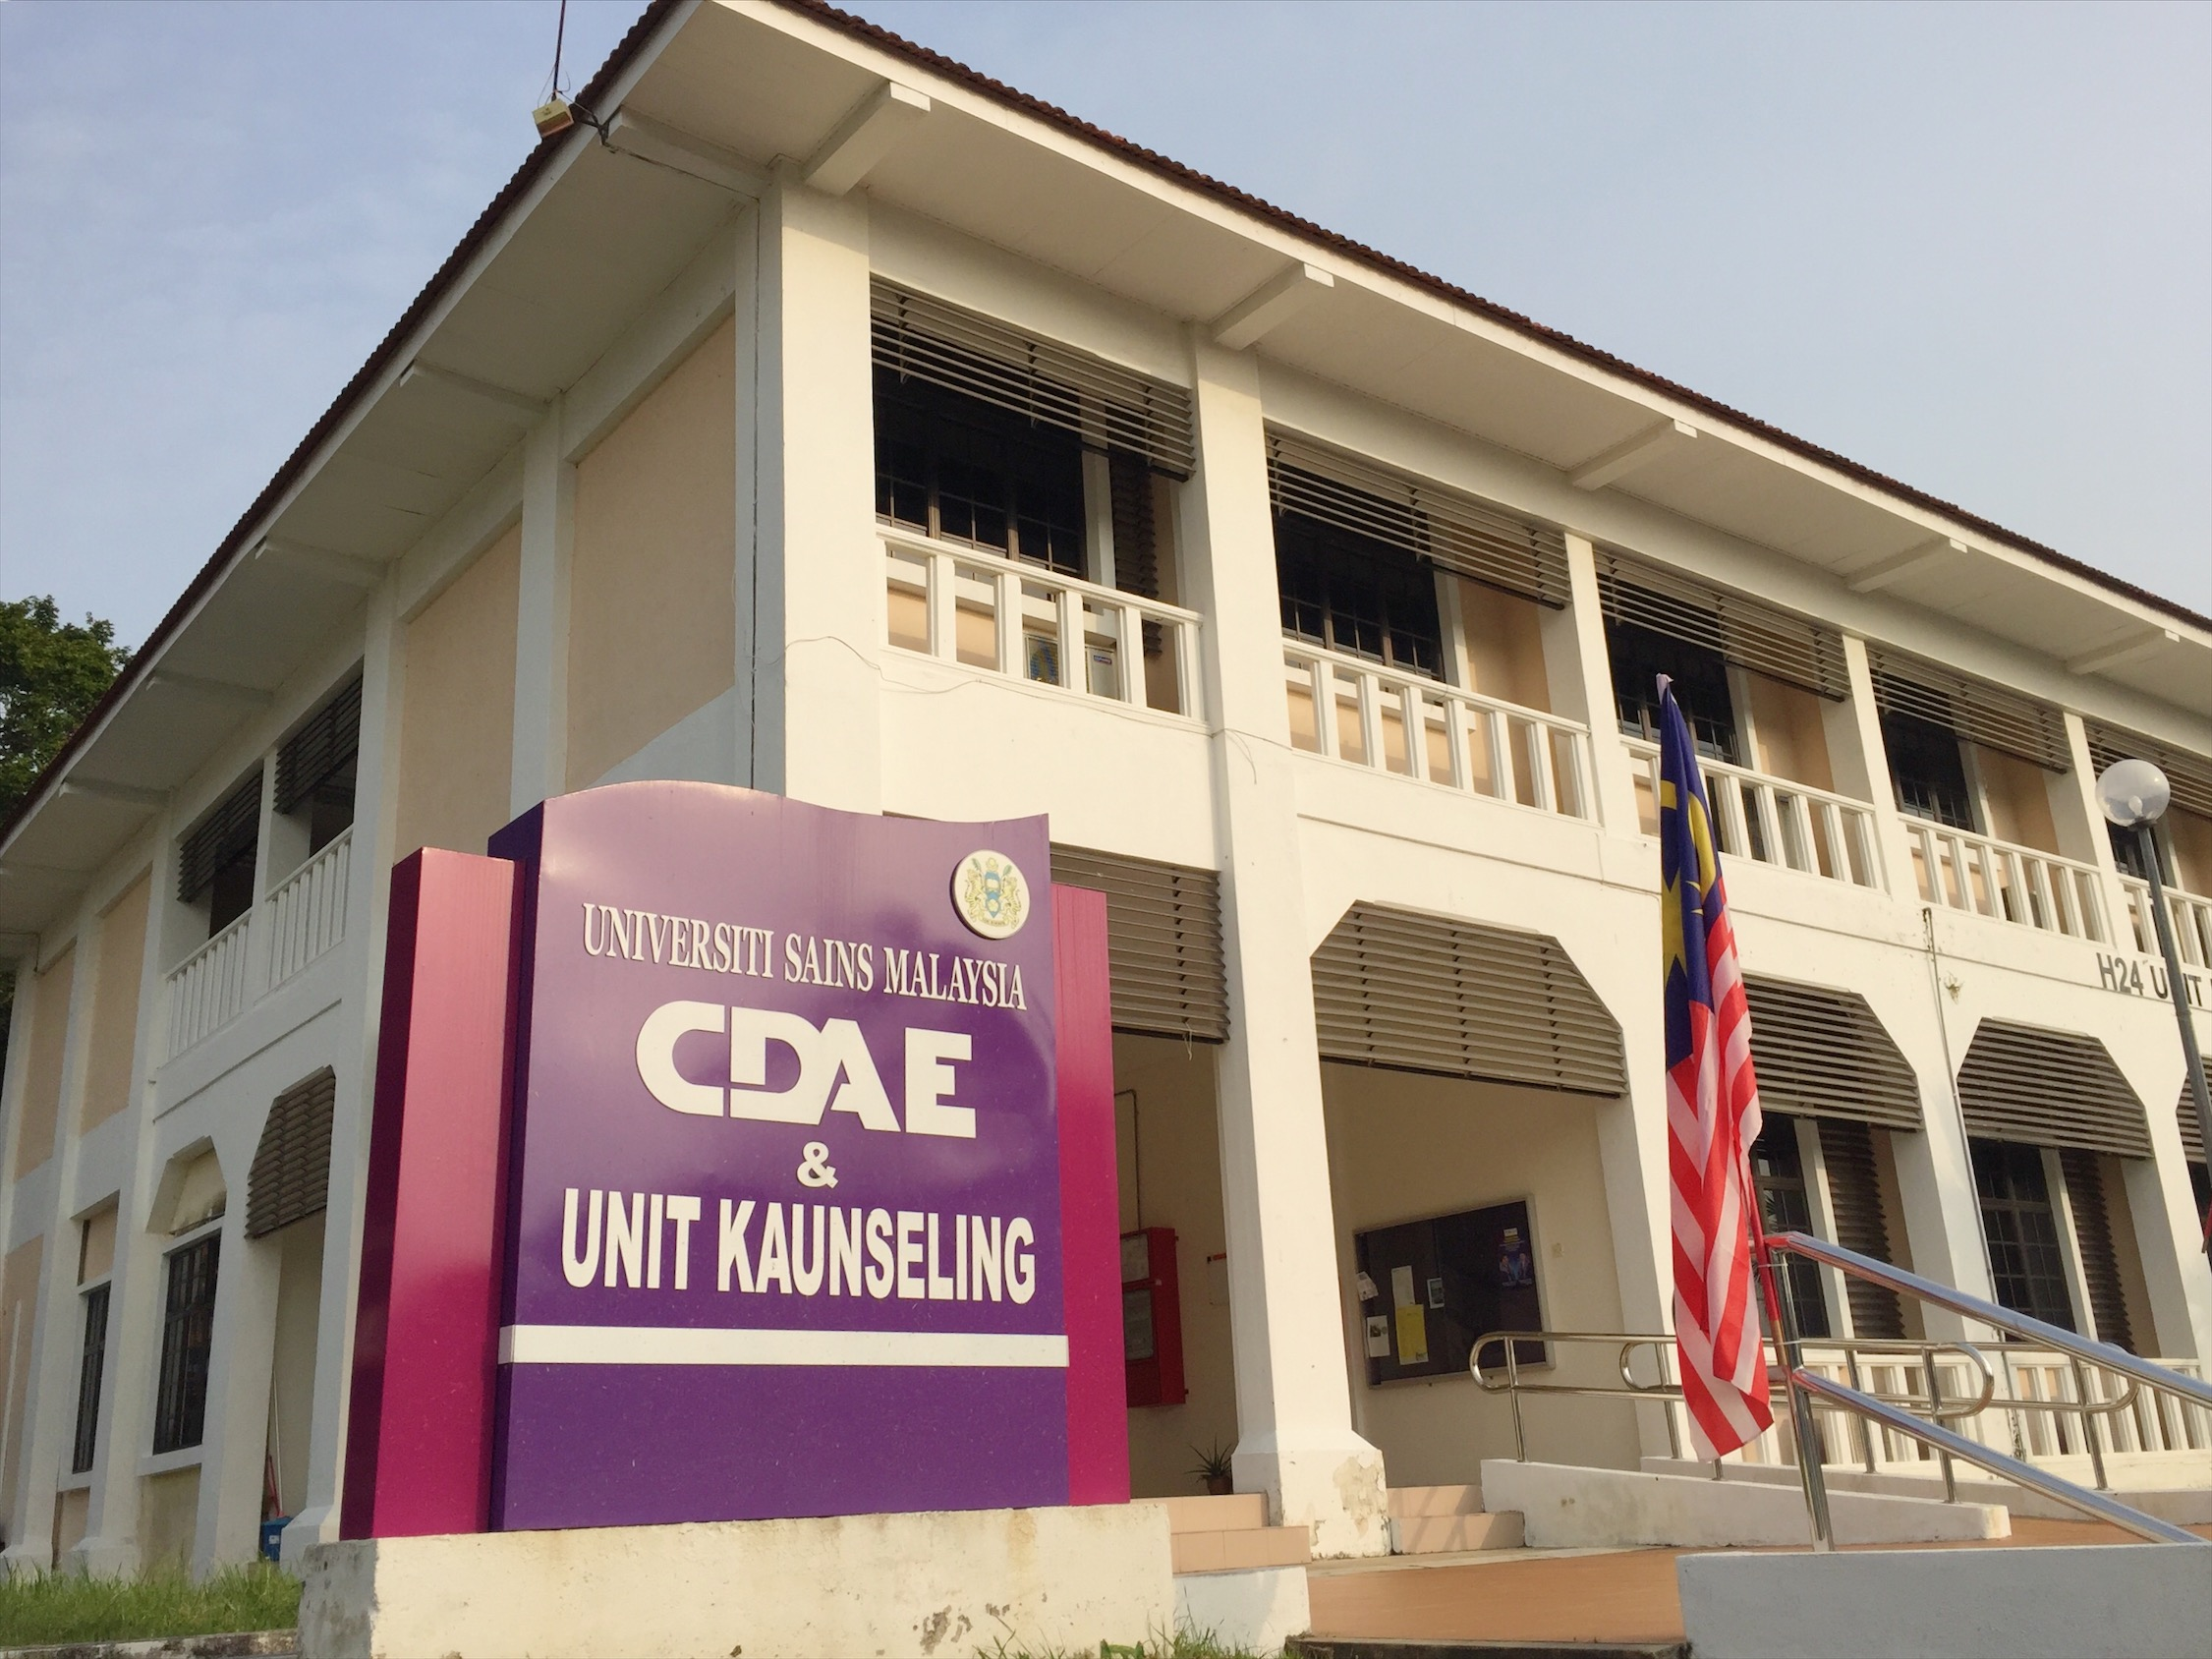 cdae building